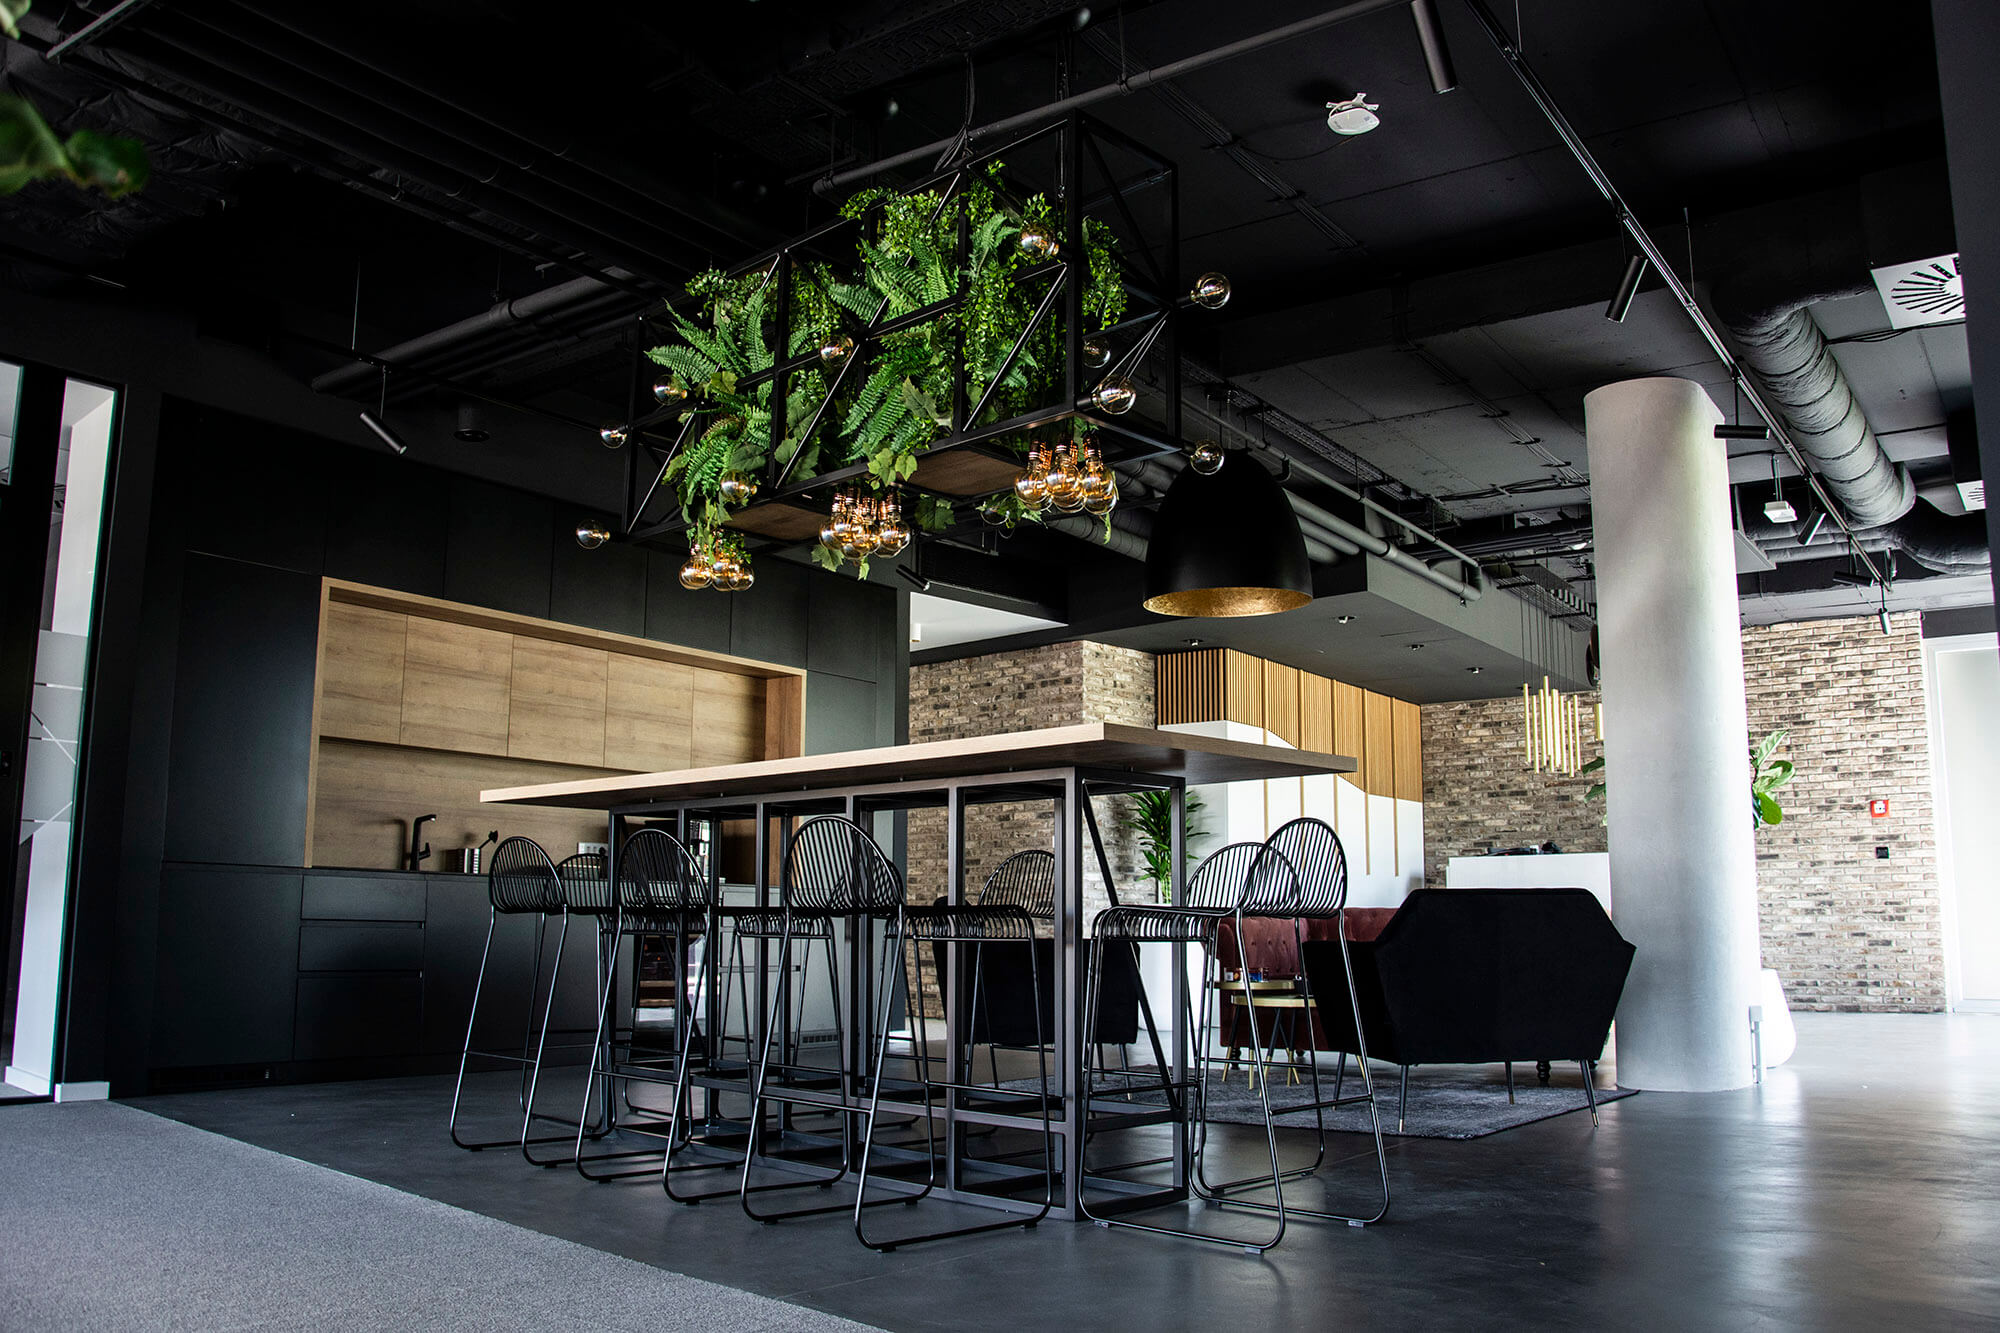 Workspace One - Coworking space, working space, office, startup